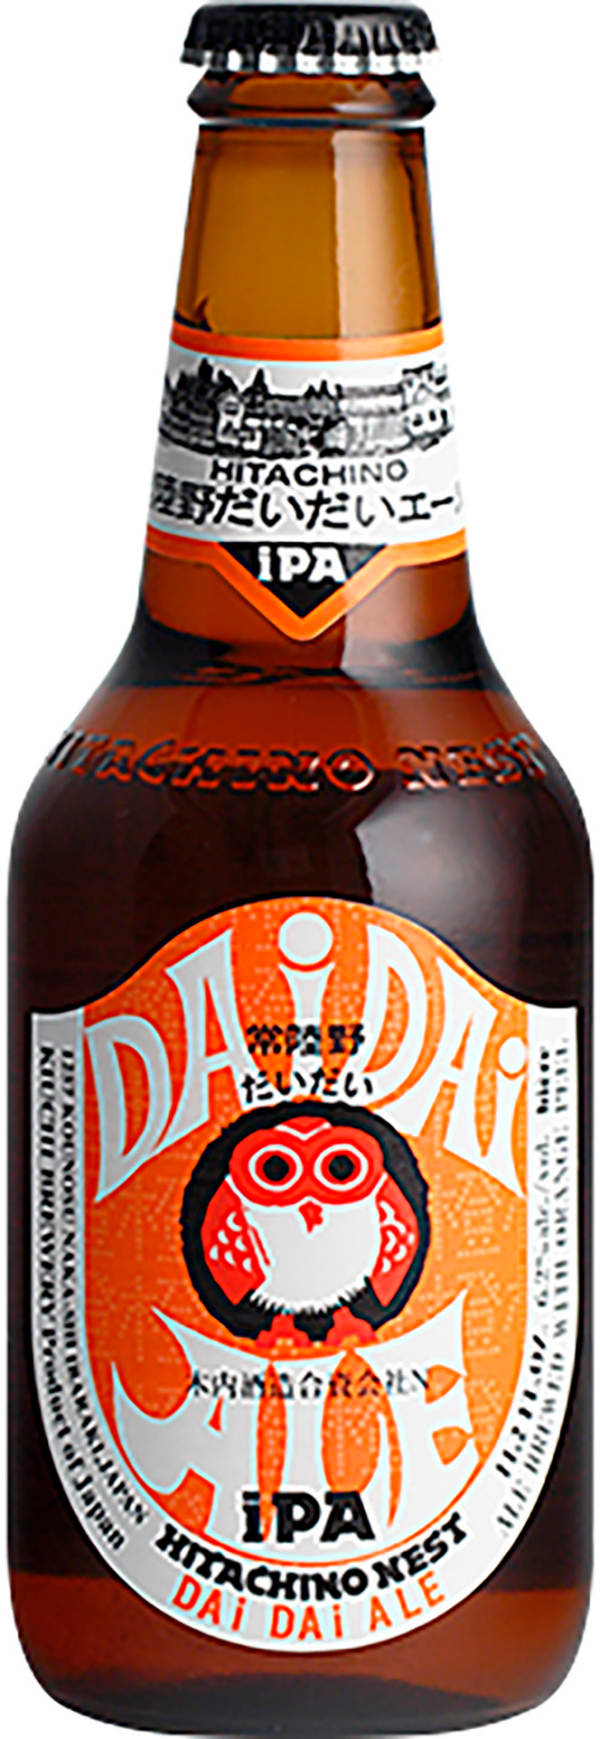 Hitachino Nest Dai Dai IPA